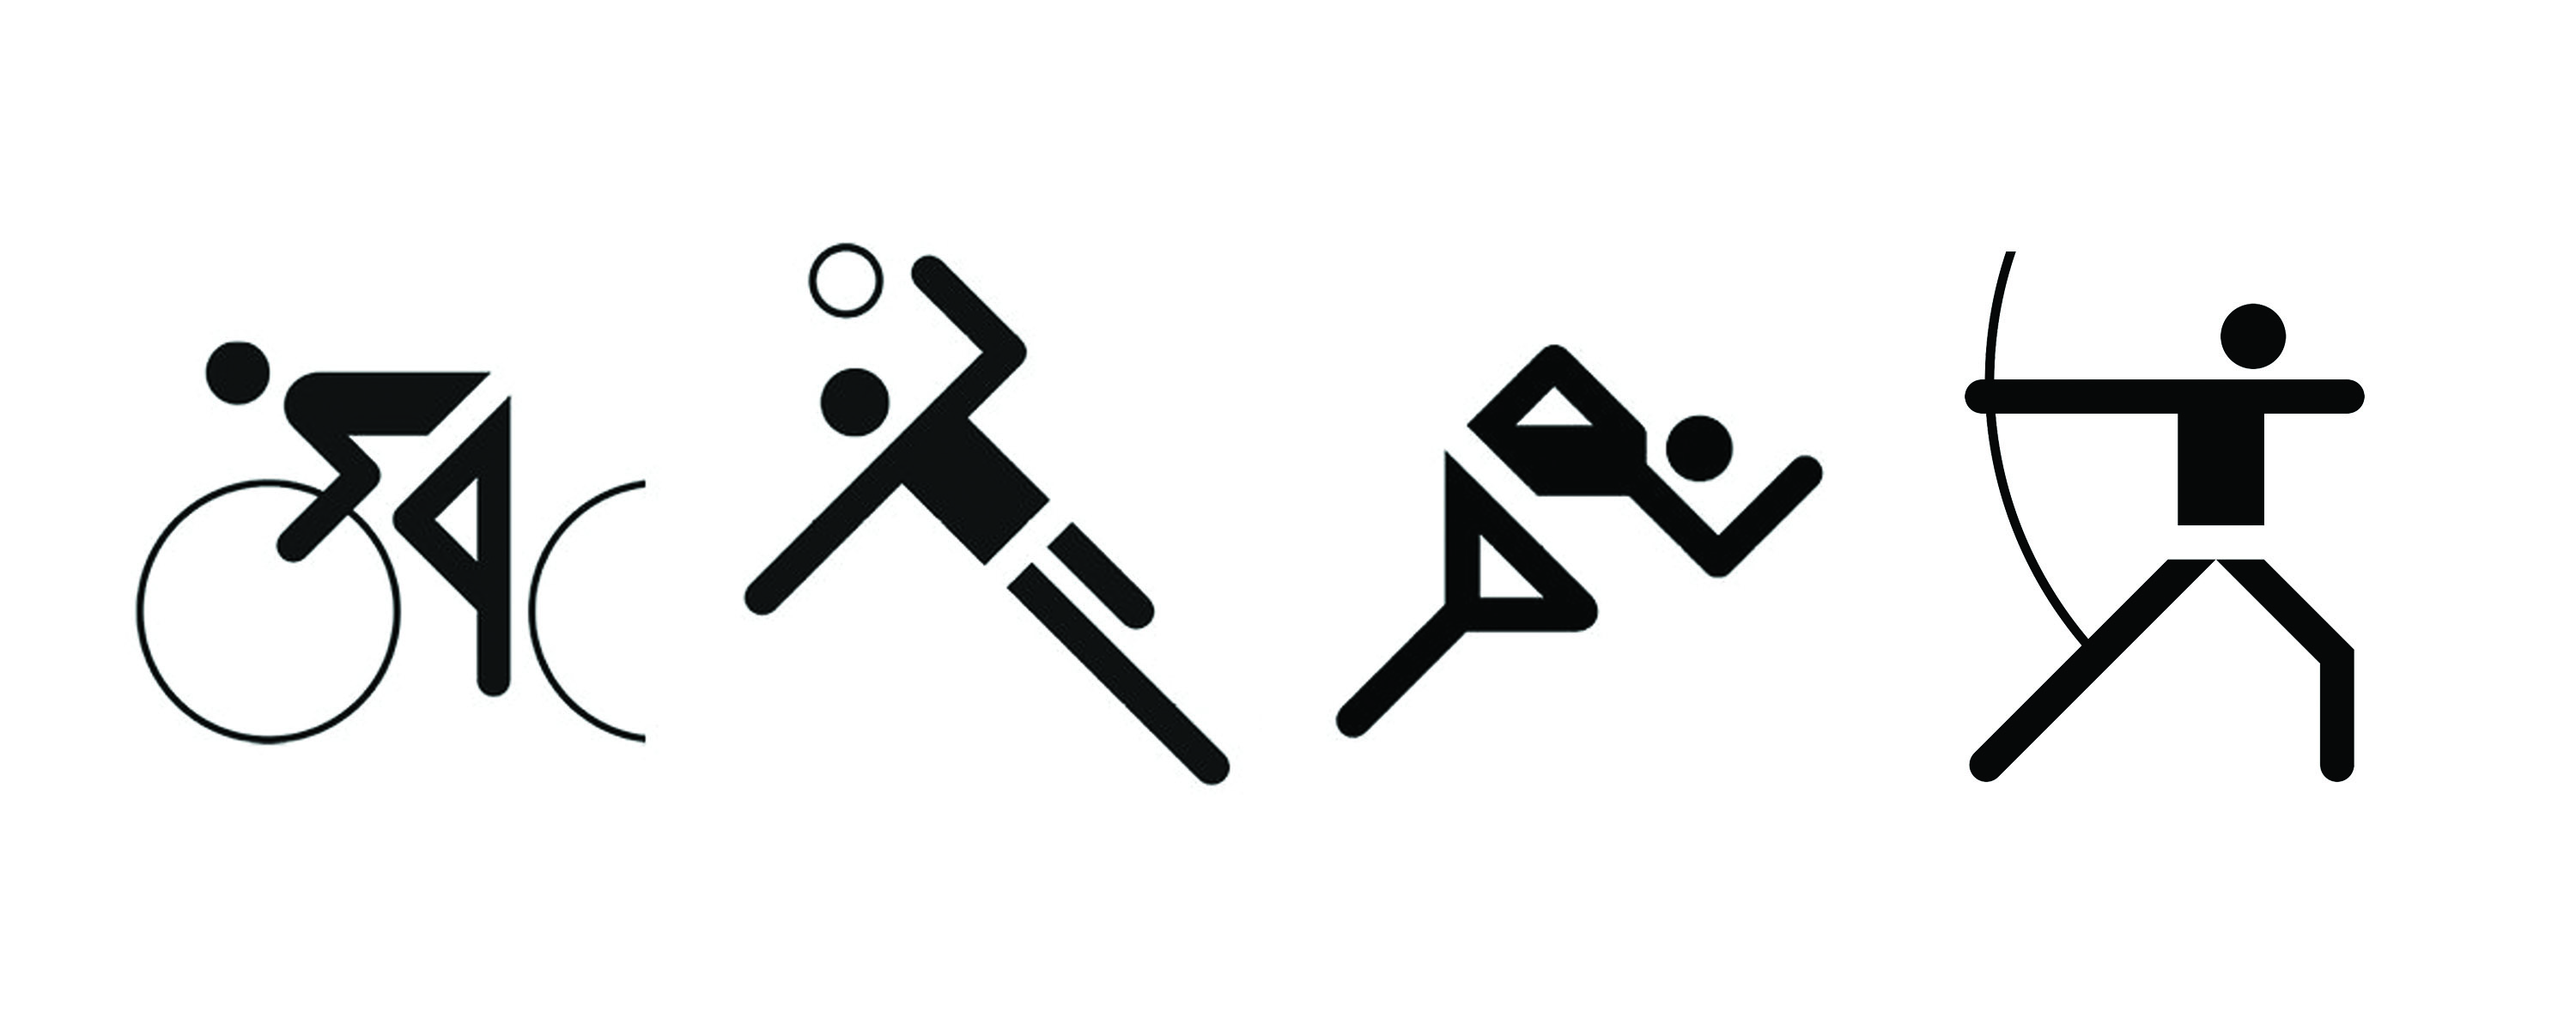 Tip of the icon examining socially symbolic indexical signage aichers anonymous figures representing the athletes who competed in the 1972 olympic biocorpaavc Images